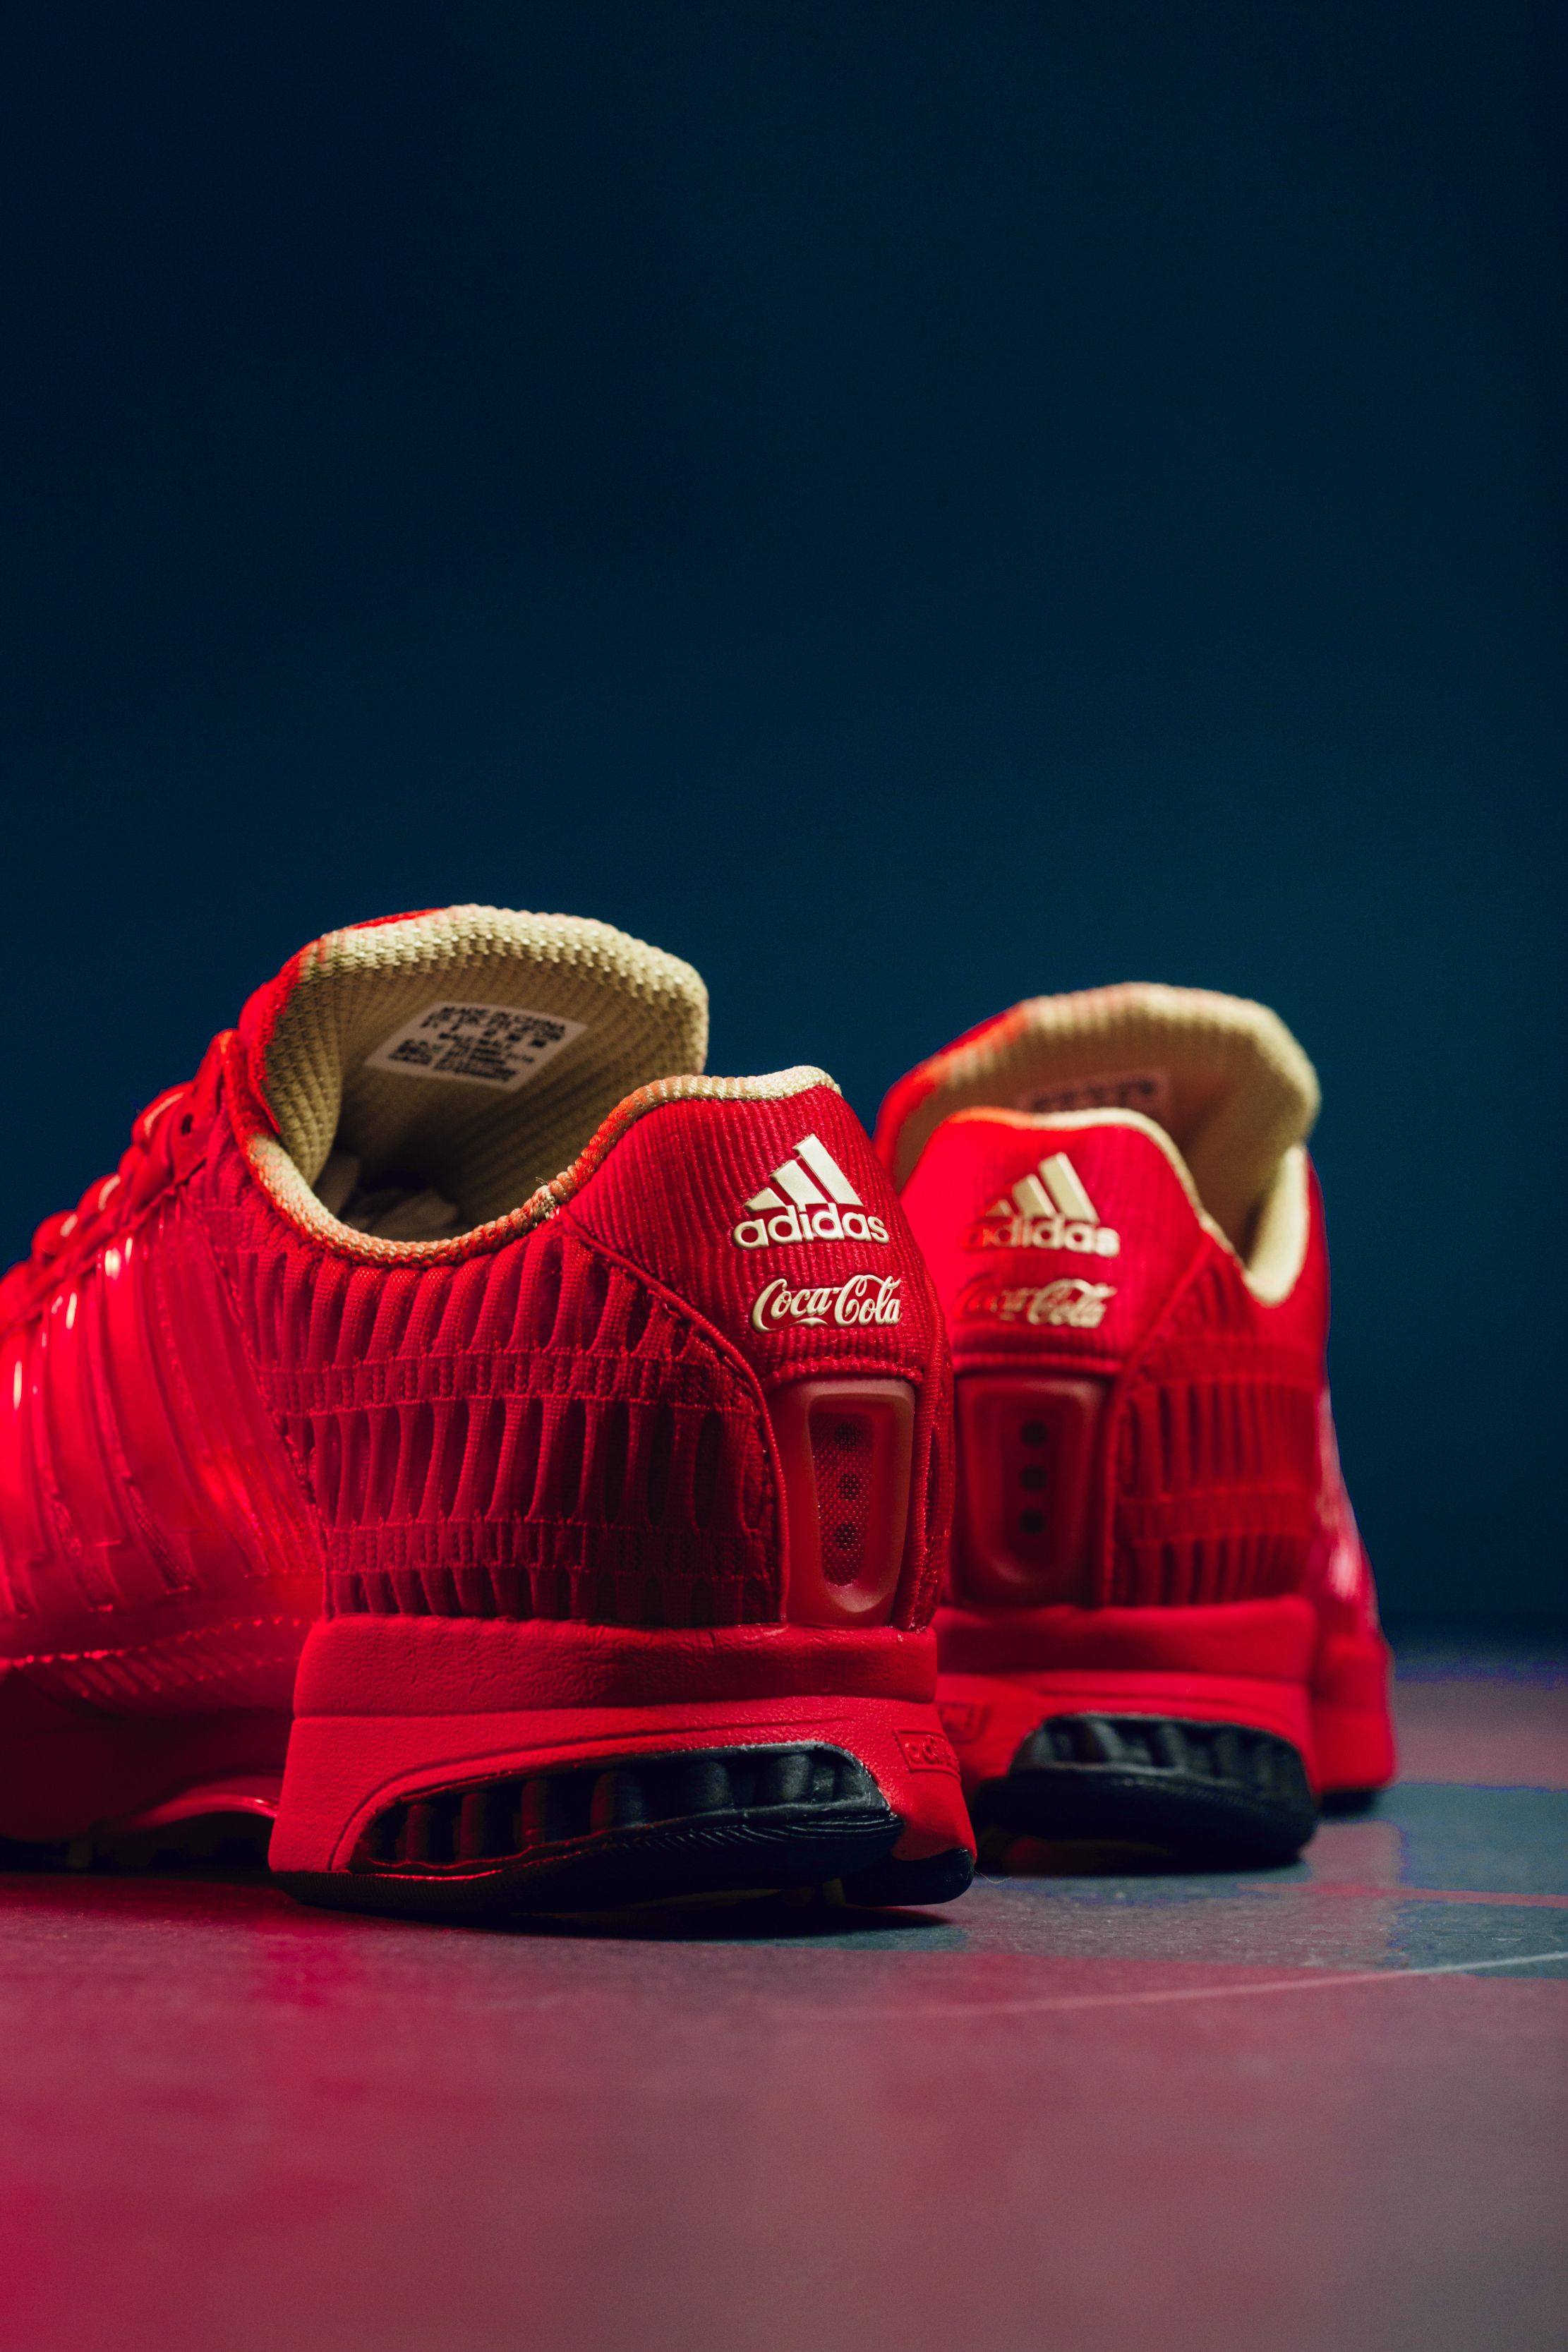 sneakers for cheap a2f0d 10eb5 Adidas x Coca Cola Climacool 1 #Adidas #CocaCola #ClimaCool1 ...